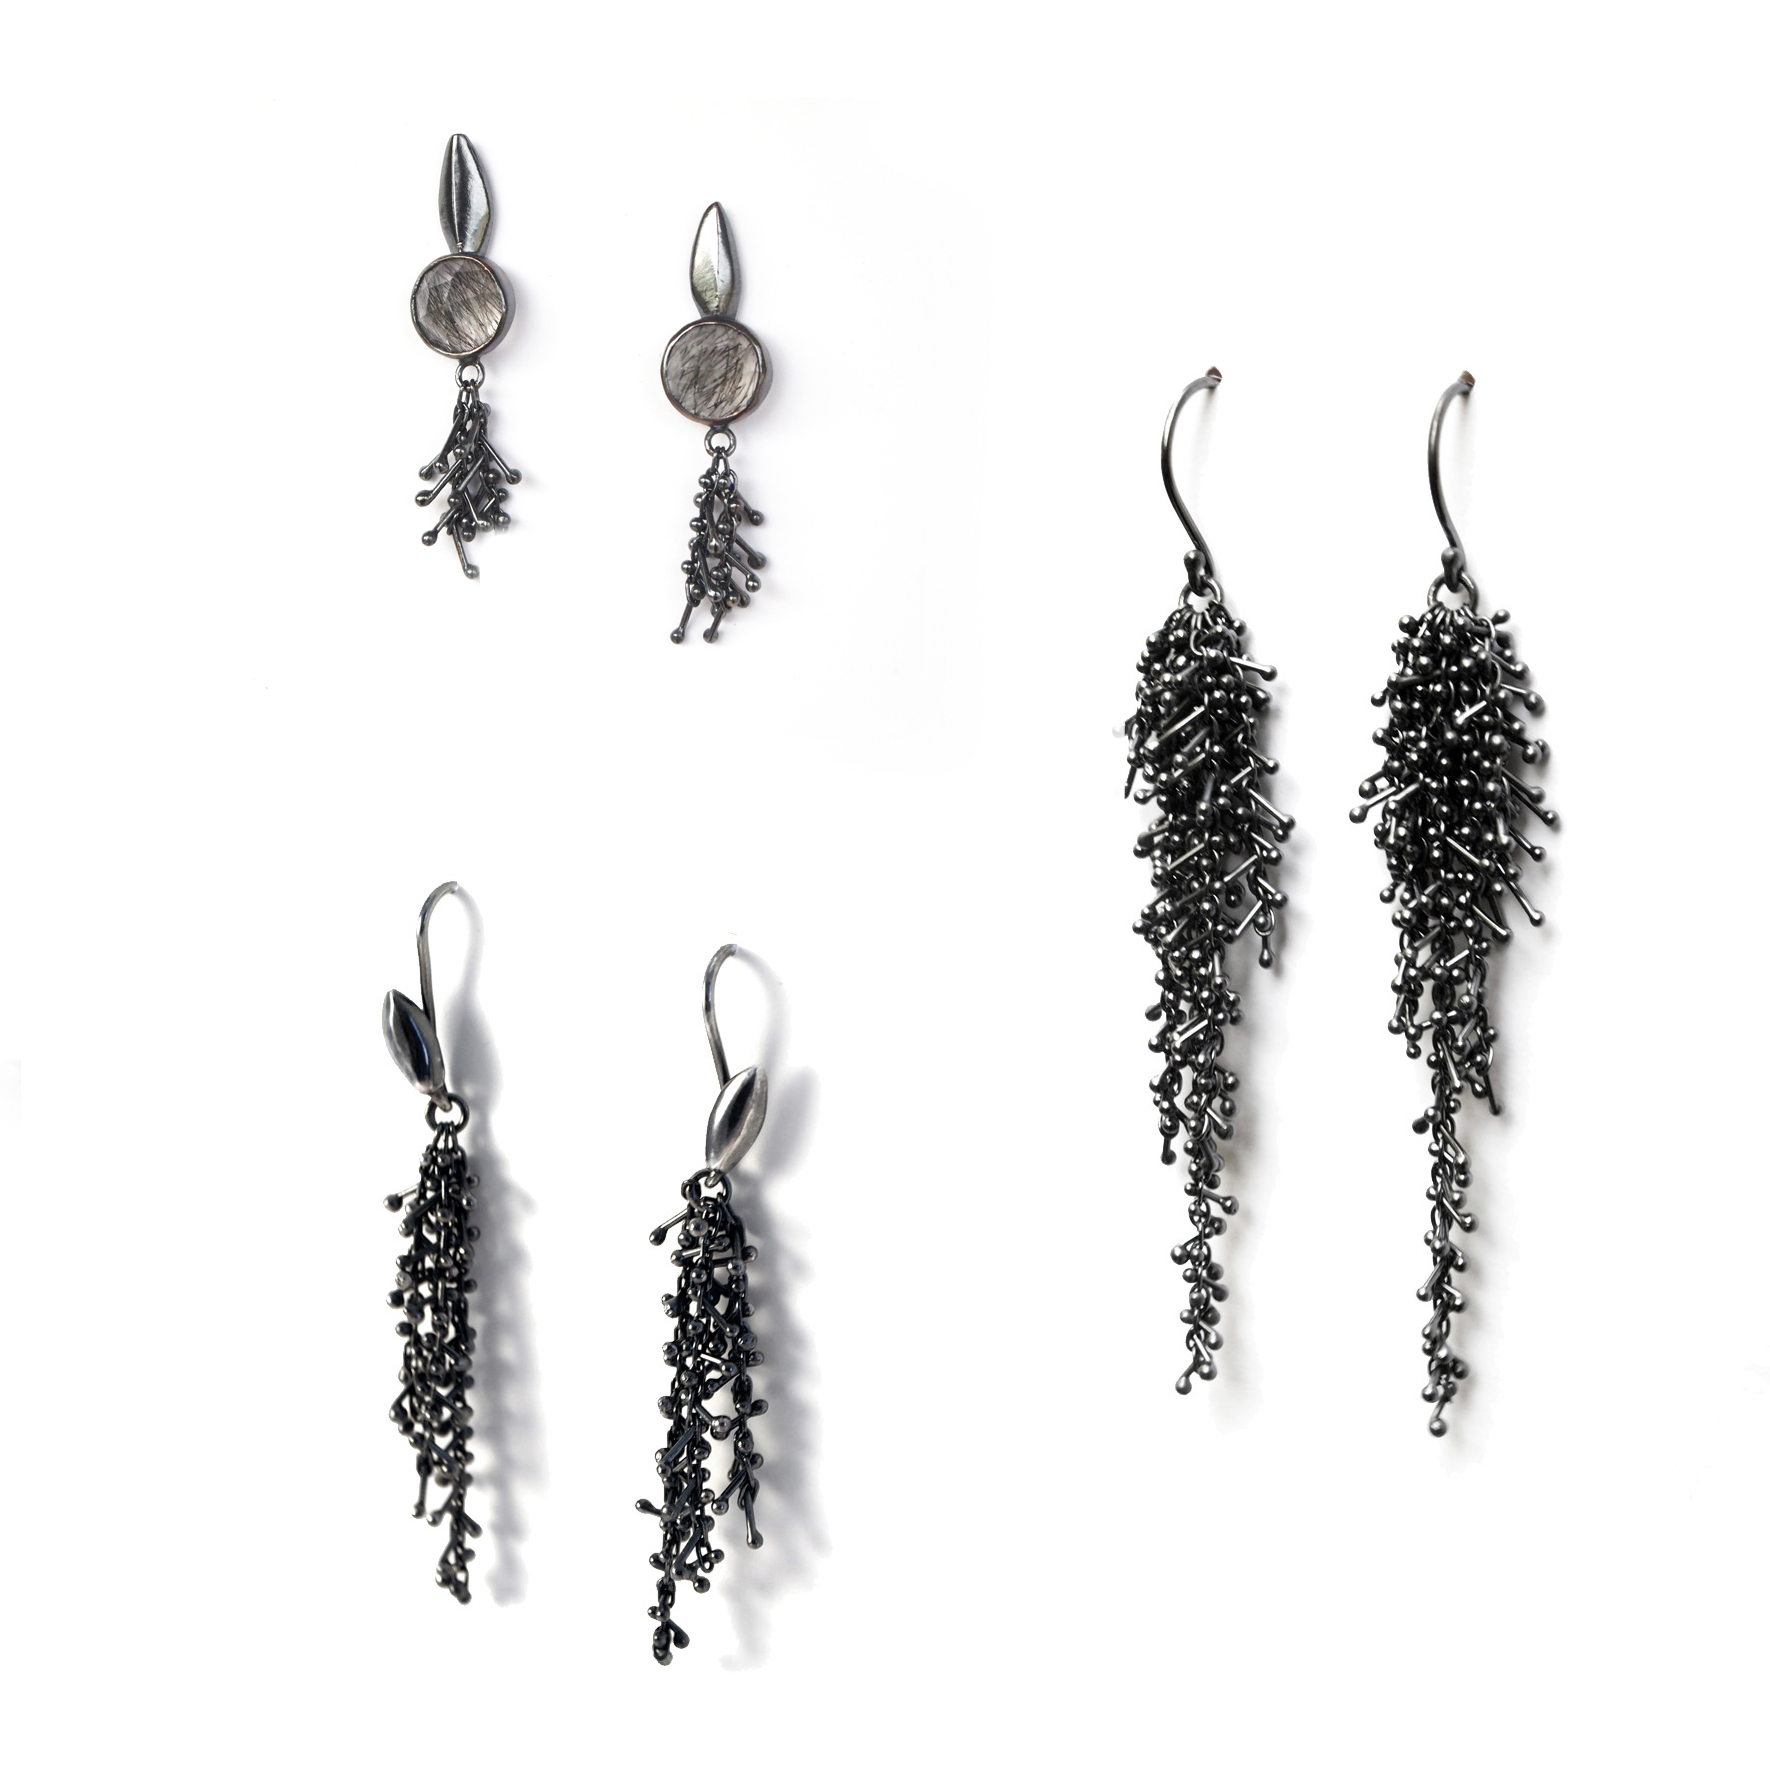 thistle_earrings_group.jpg